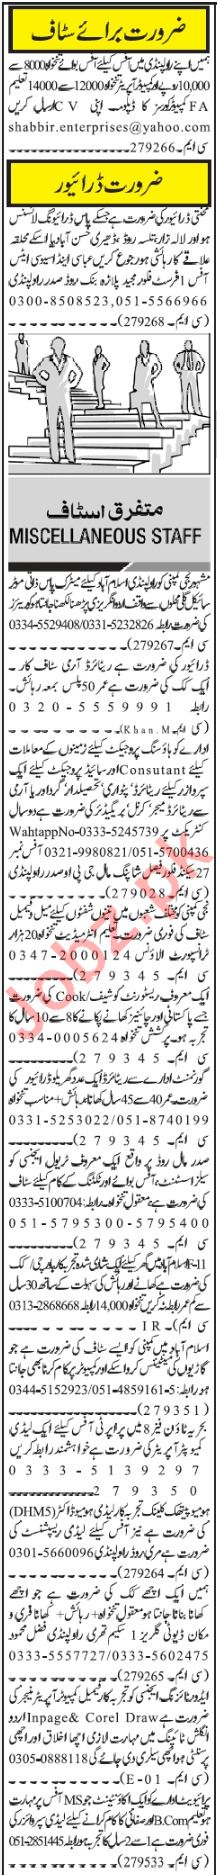 Daily Jang Newspaper Classified Ads 2018 2019 Job